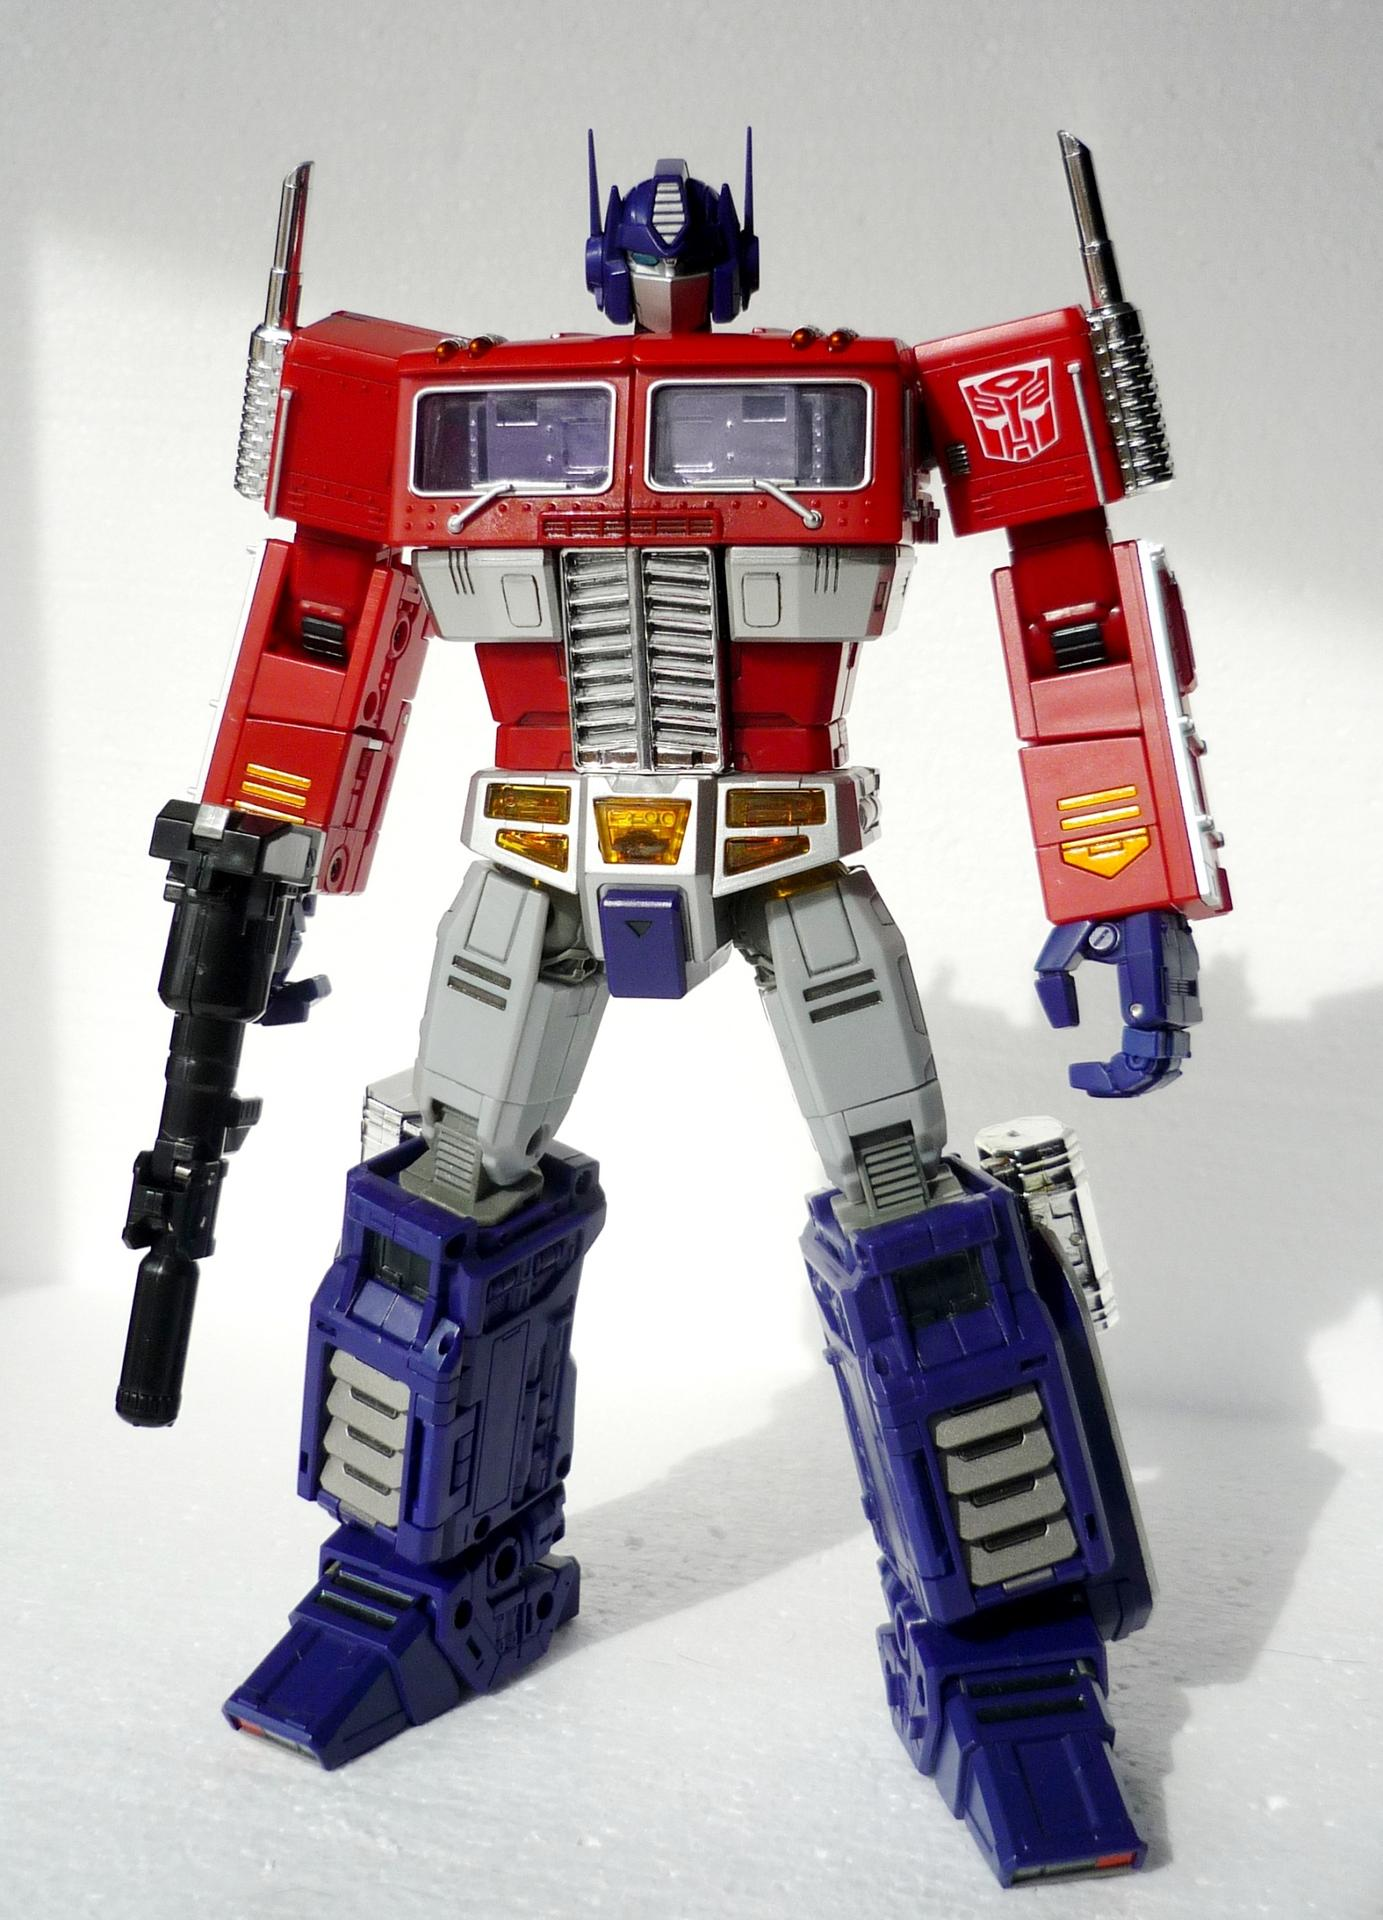 MP-10 leg panel removal and paint accents-yellow-orange_small.jpg